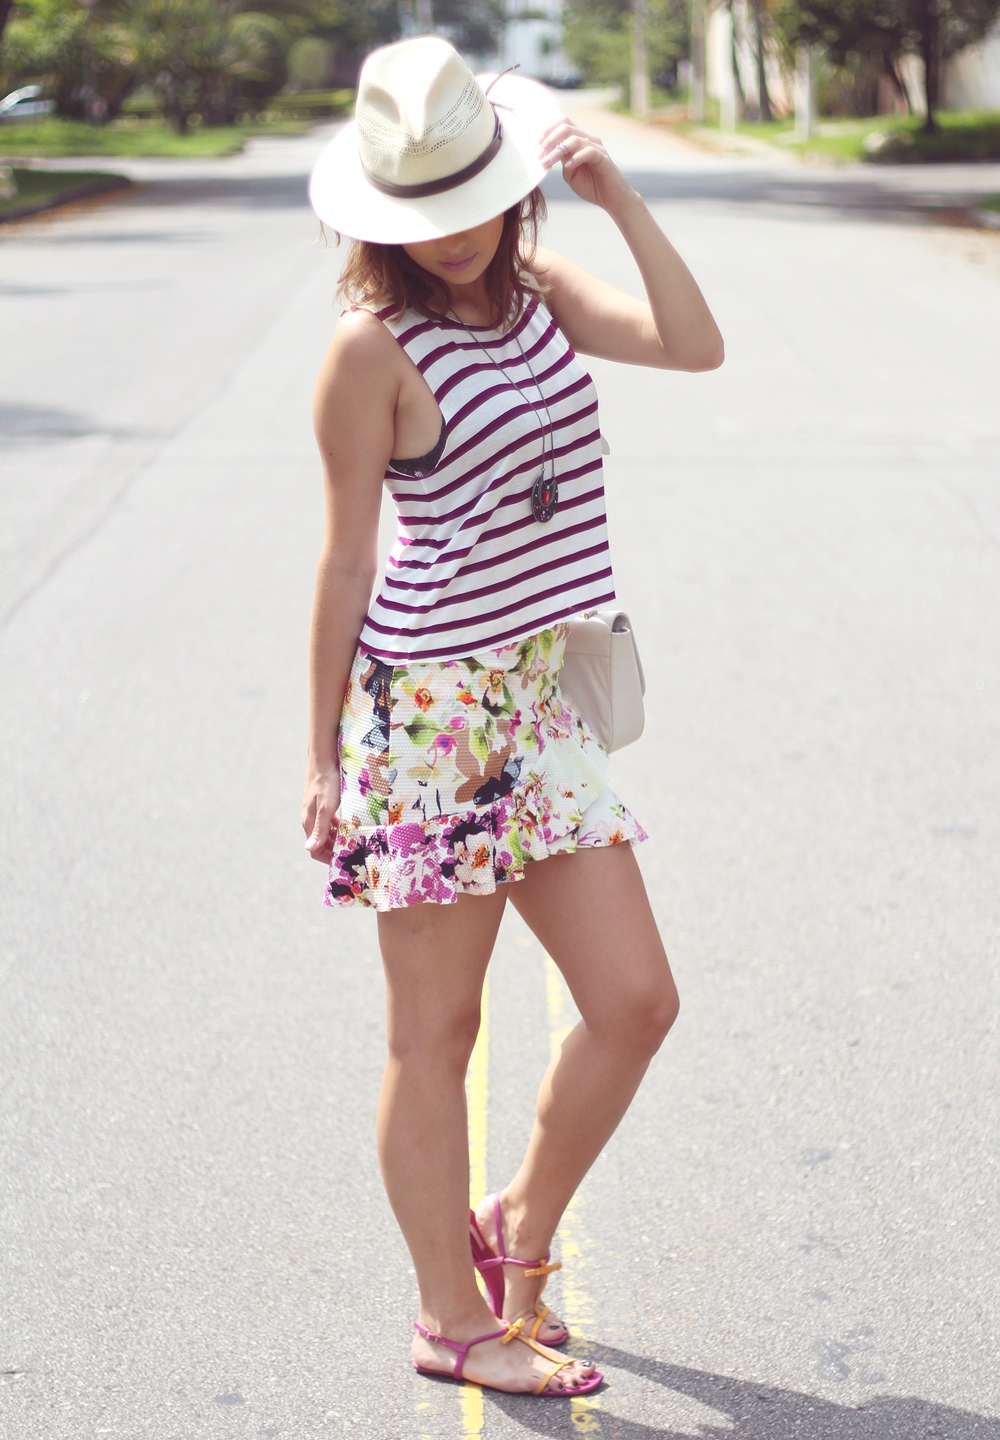 vanduarte-mix-estampas-listras-floral-look3-7